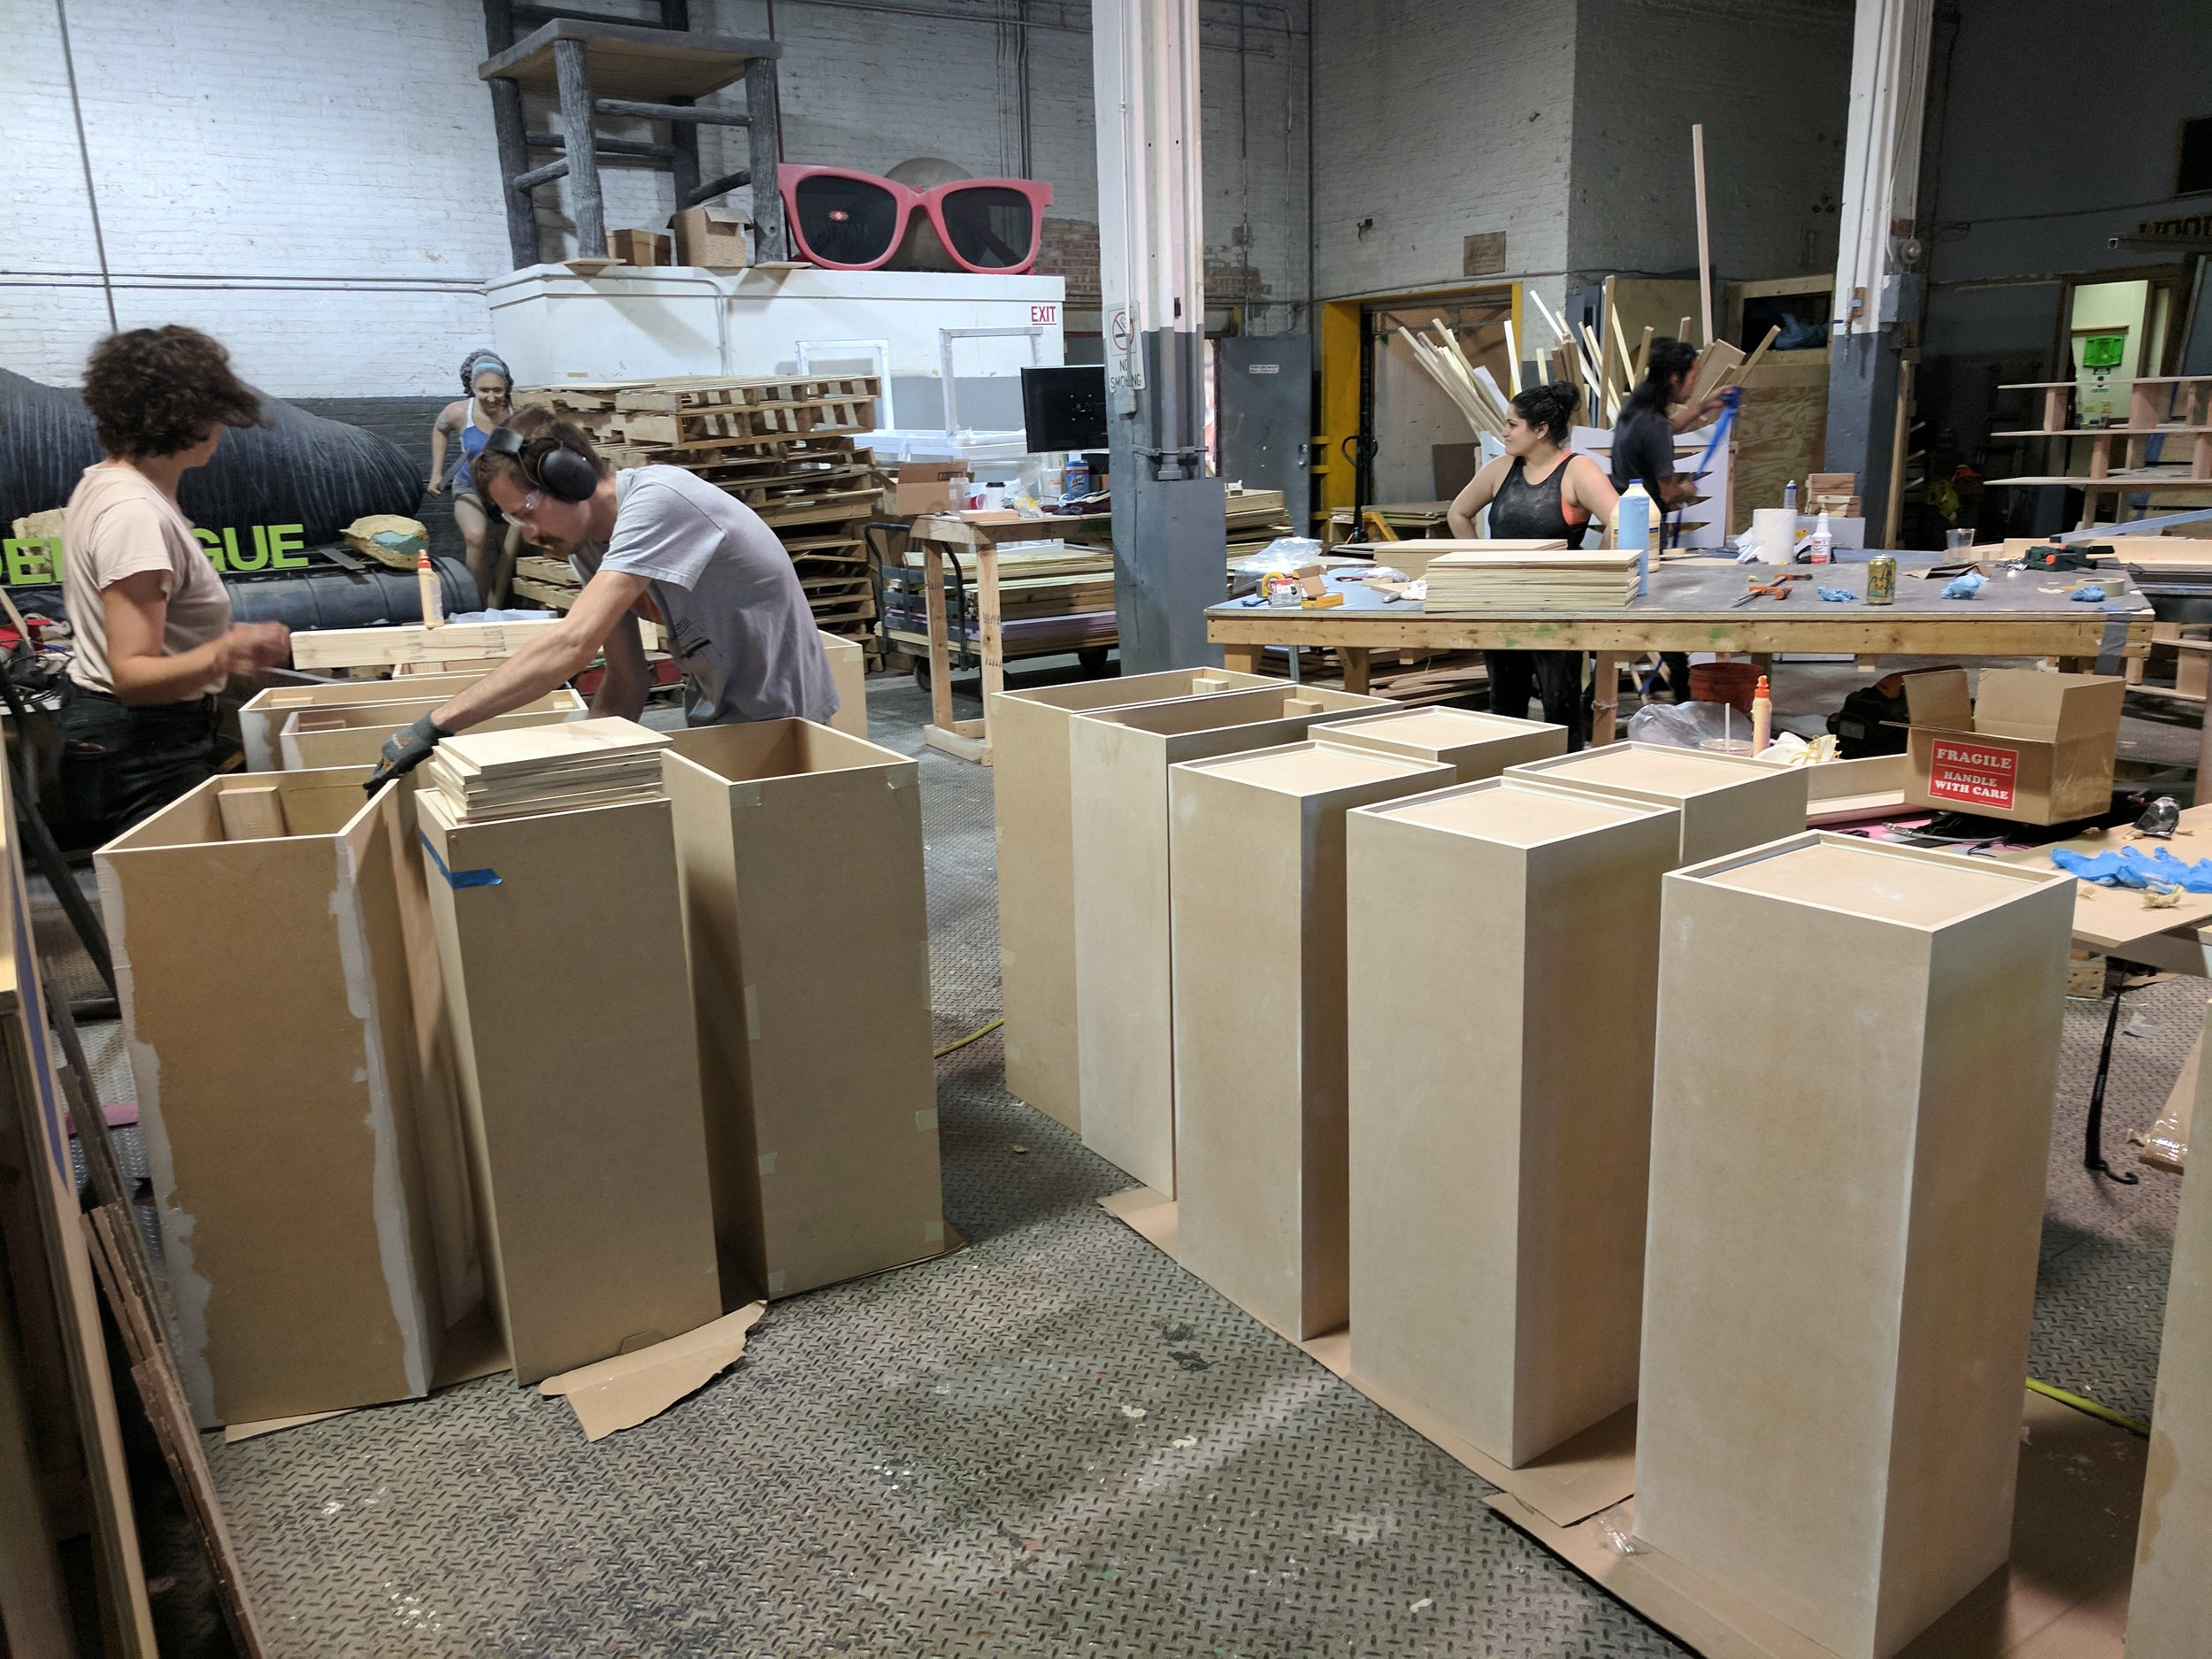 Pedestals getting prepped for sanding and paint.